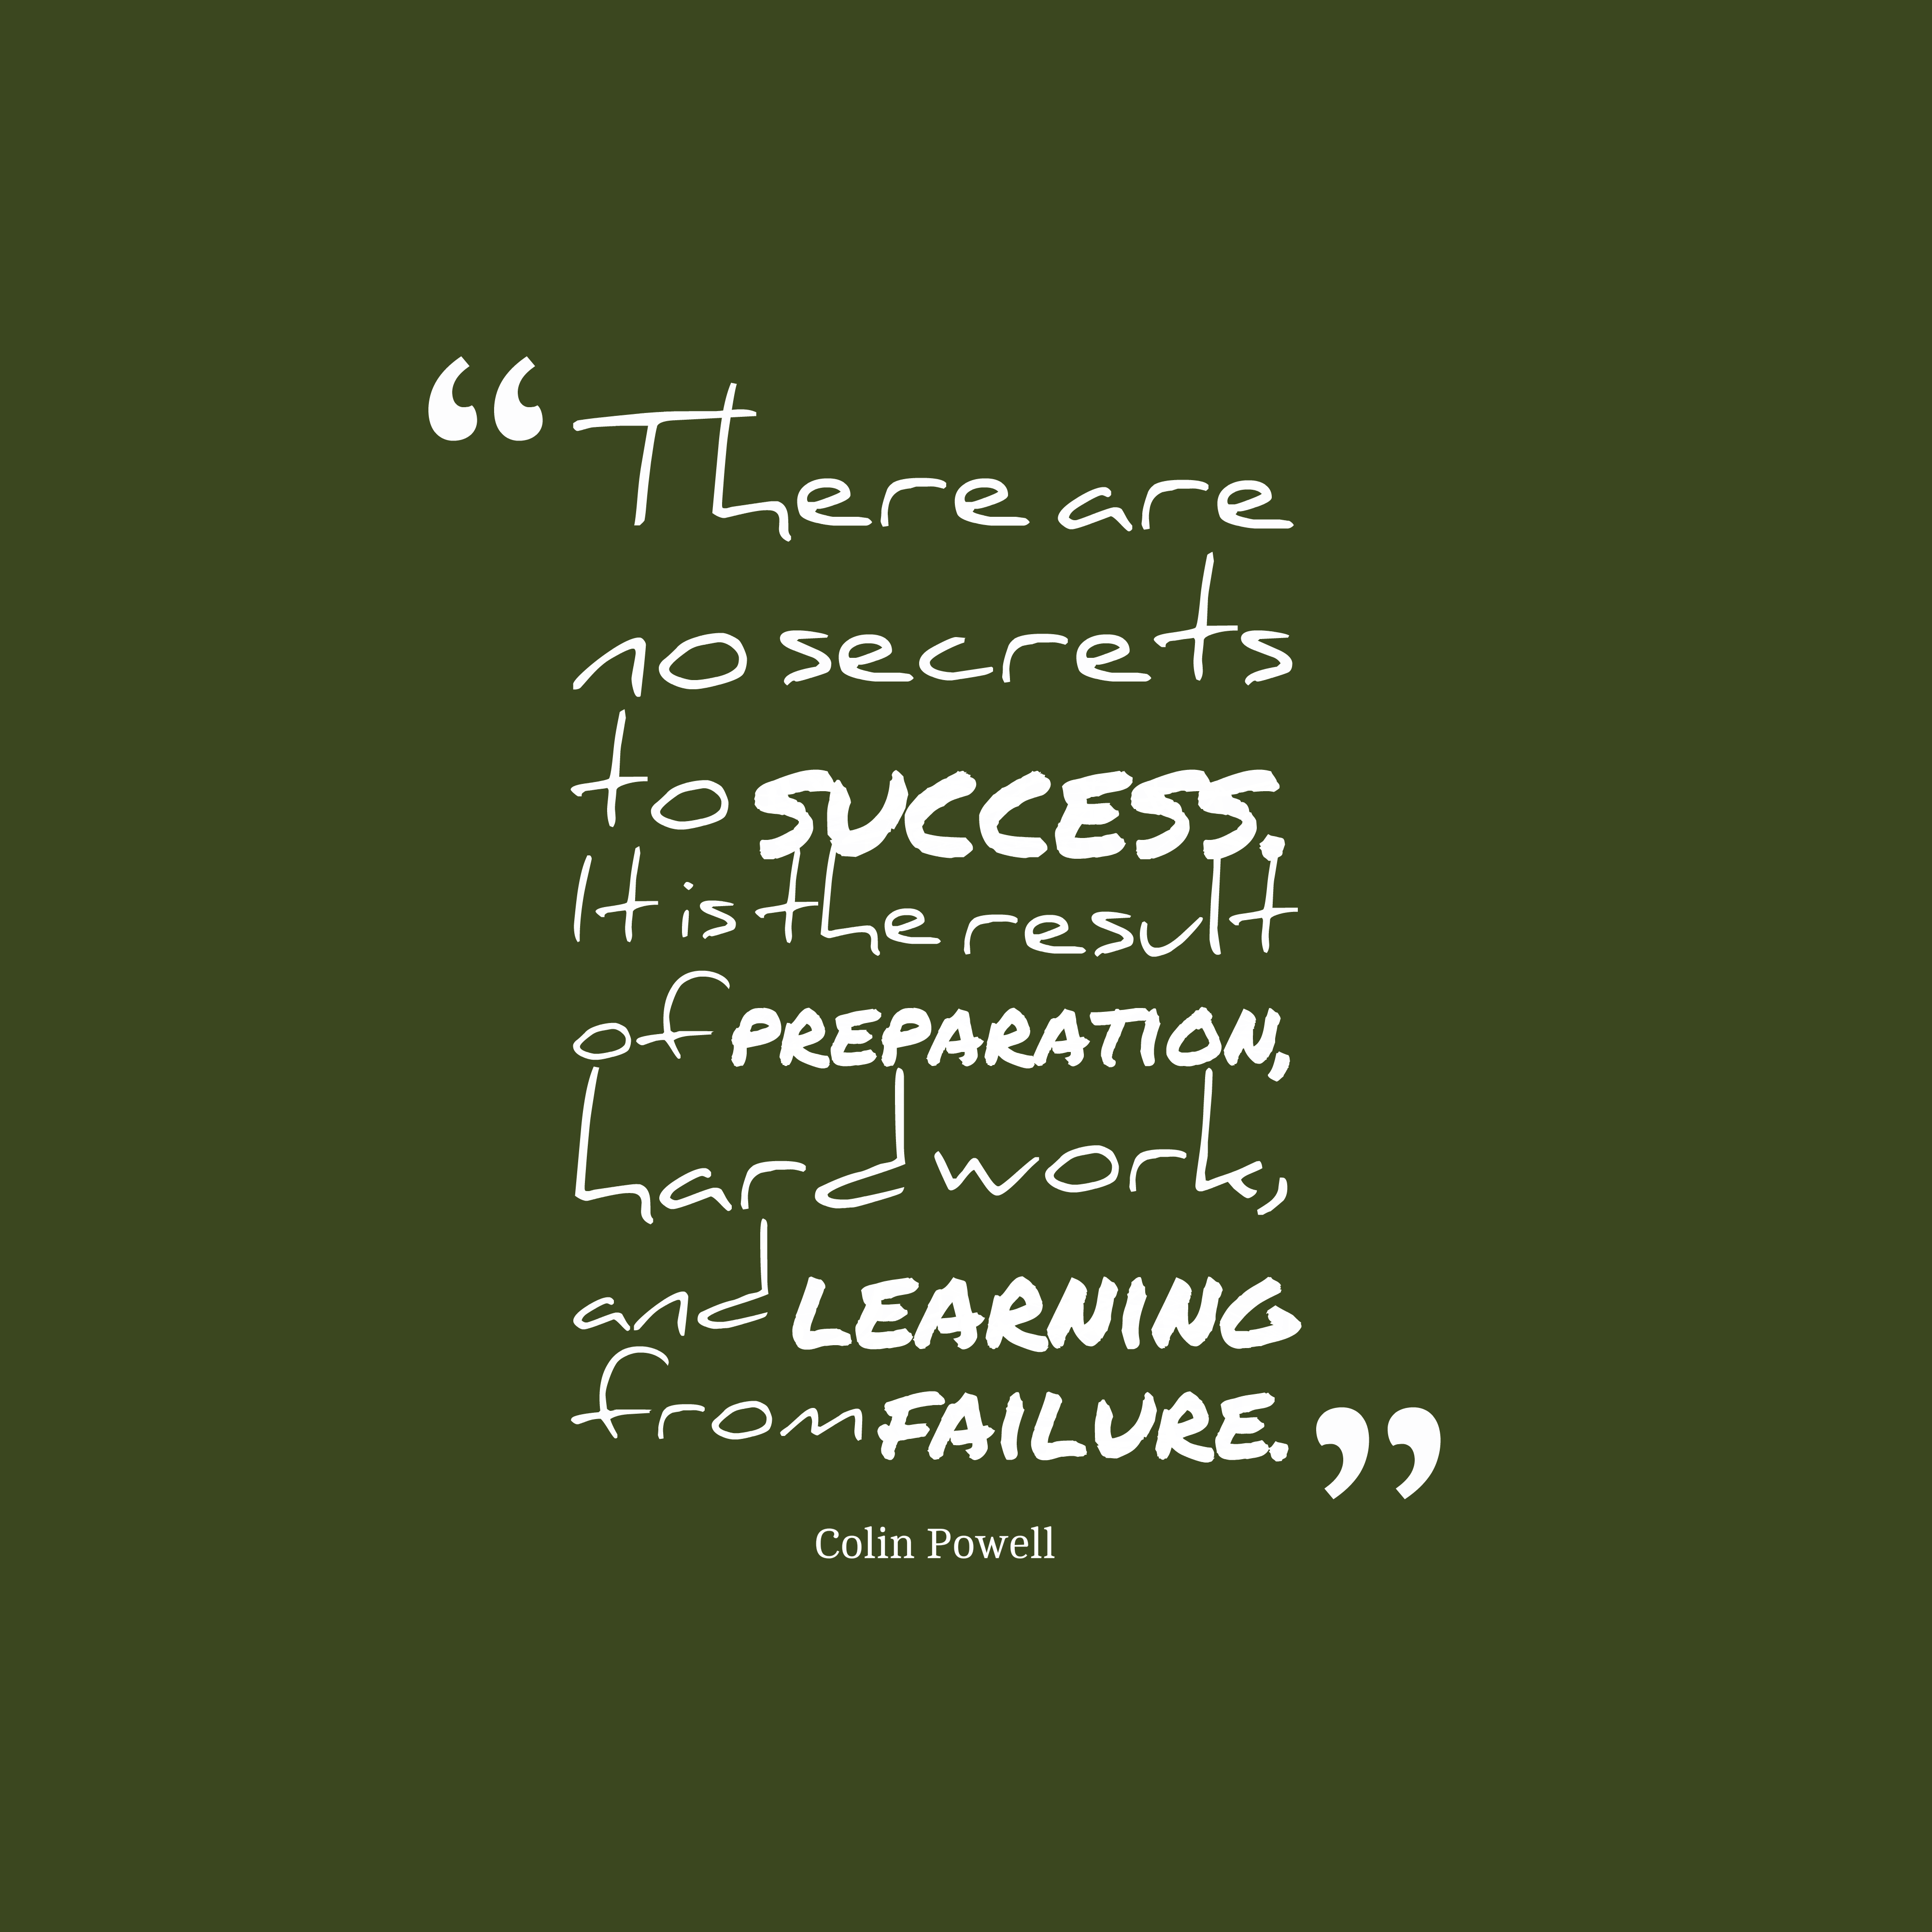 Quotes About Failure Leading To Success: Learning From Failure Quotes. QuotesGram